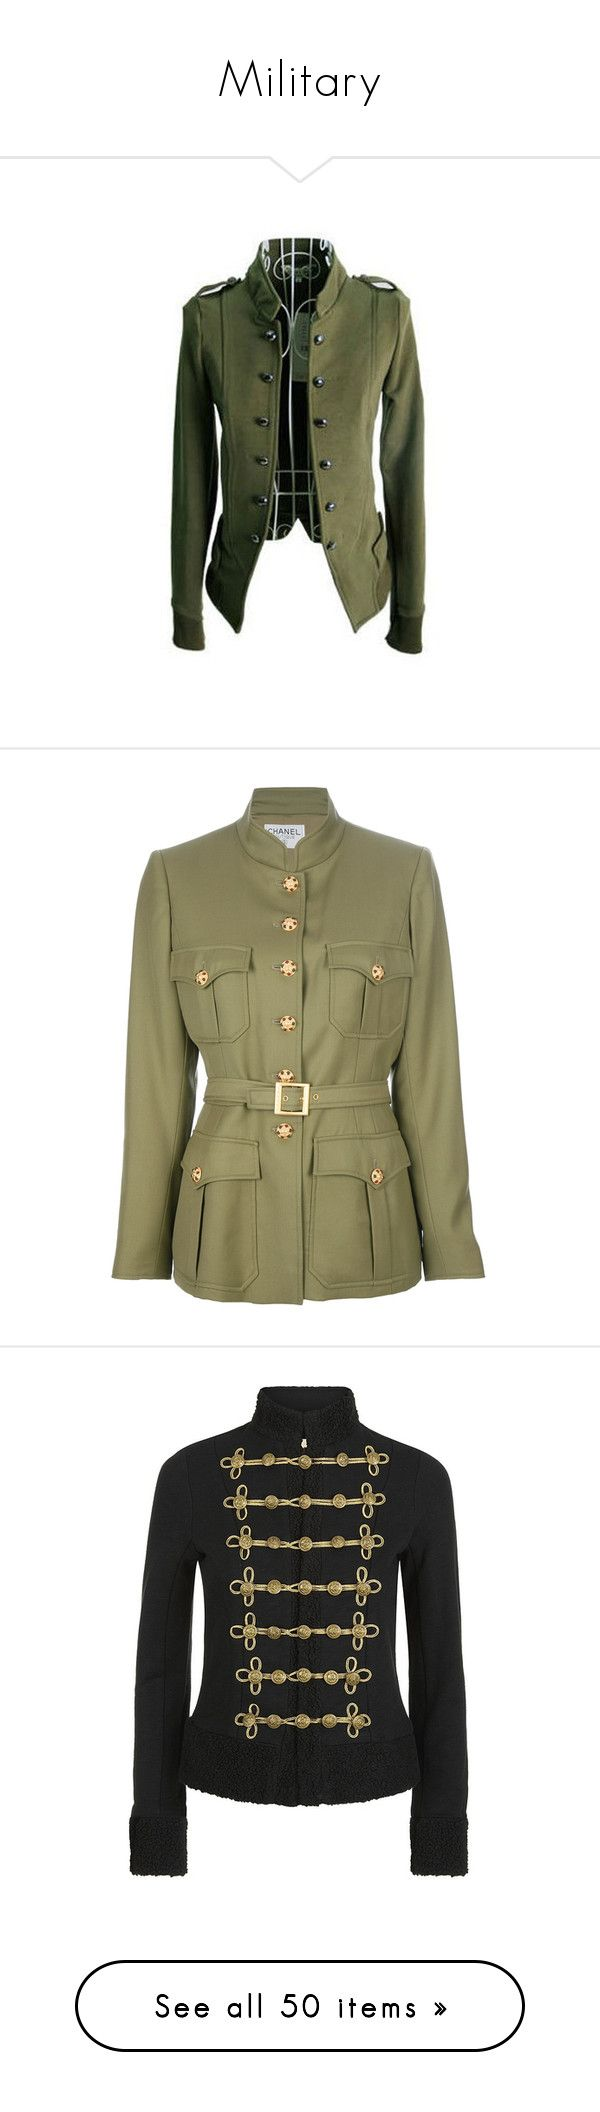 """""""Military"""" by maymchale ❤ liked on Polyvore featuring outerwear, jackets, coats, tops, green, mandarin collar jacket, green jacket, green military style jacket, olive green military jacket and long sleeve jacket"""